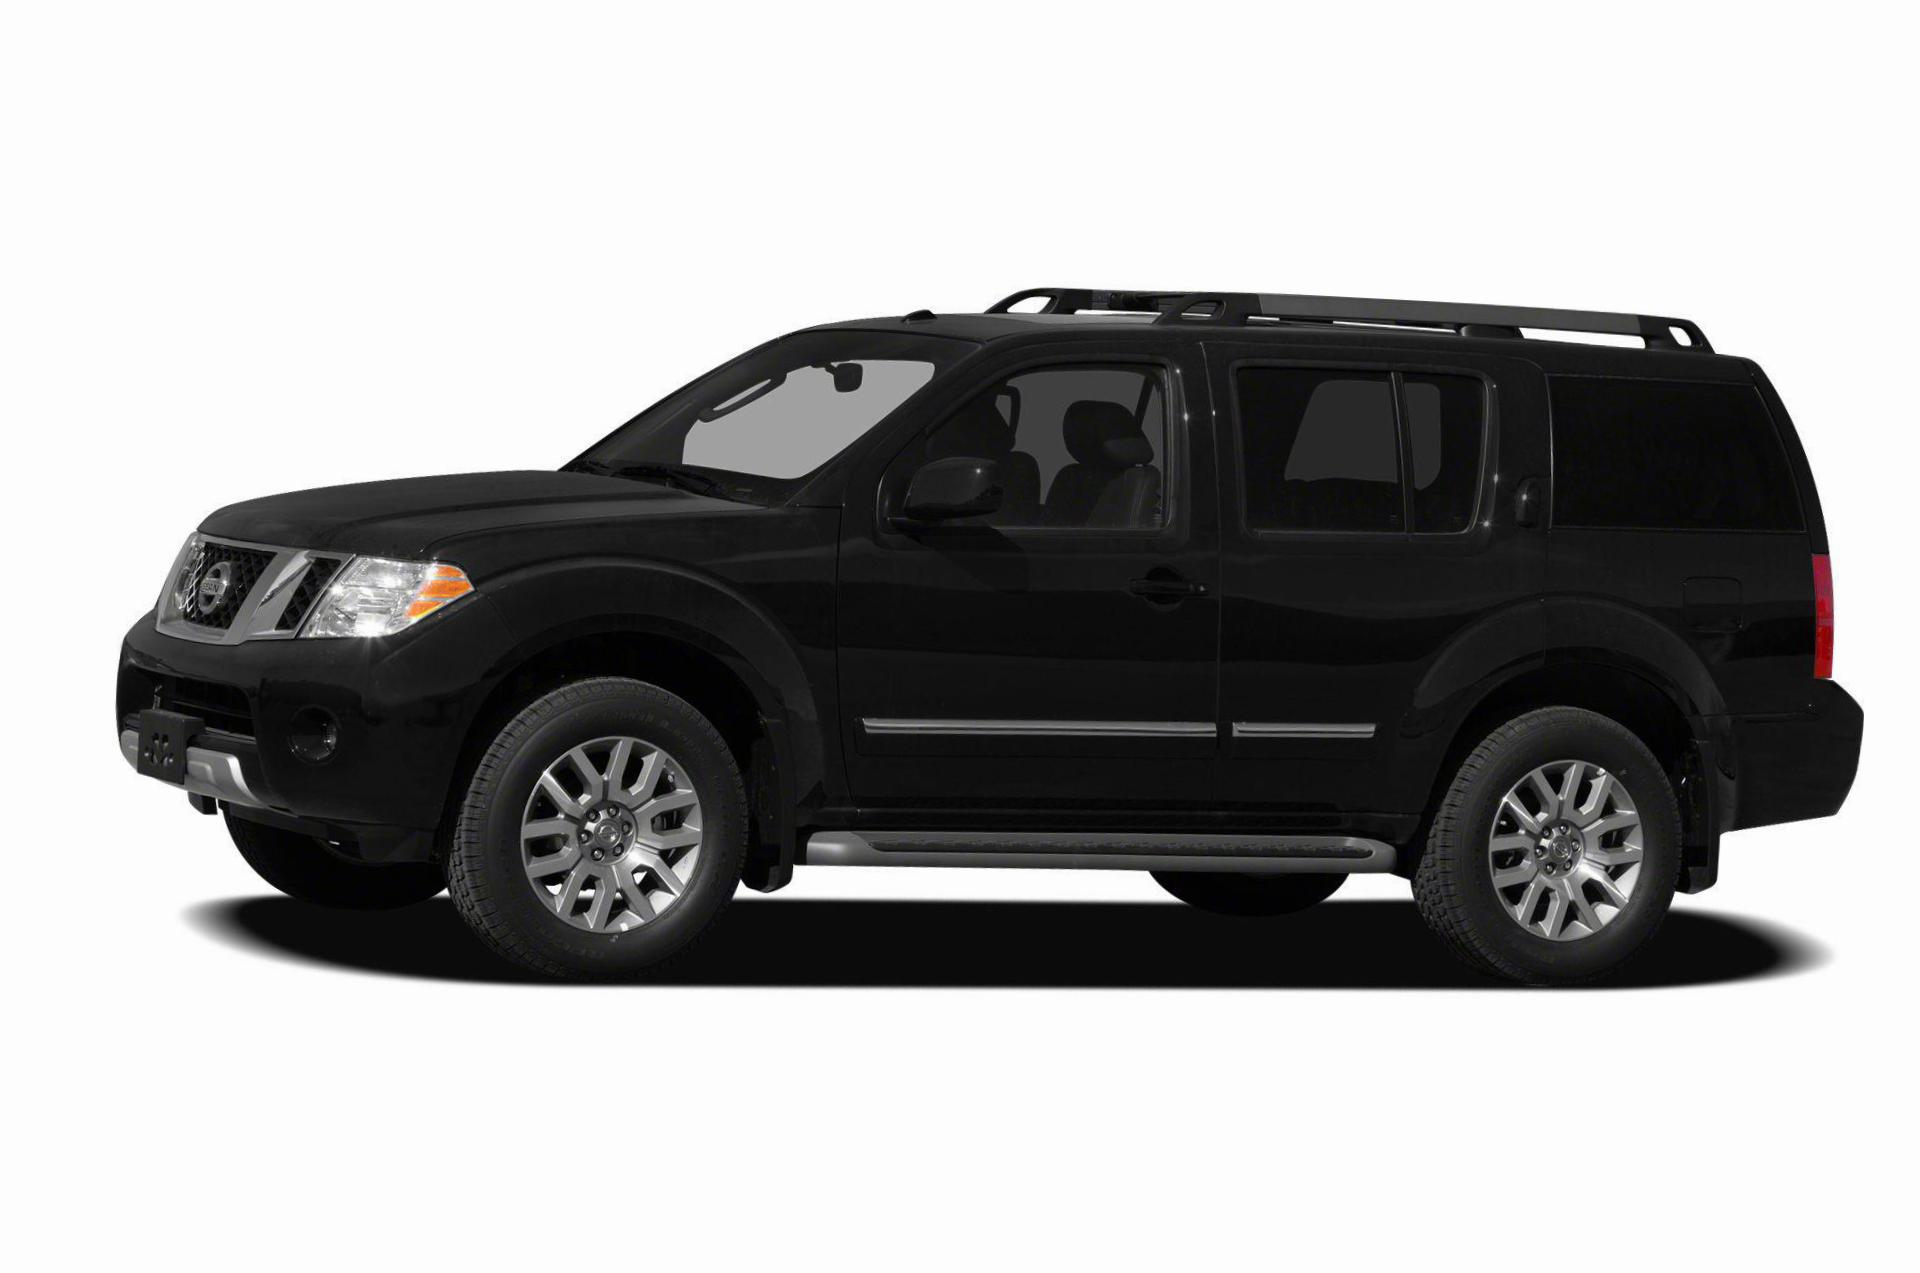 Nissan Pathfinder prices 2011